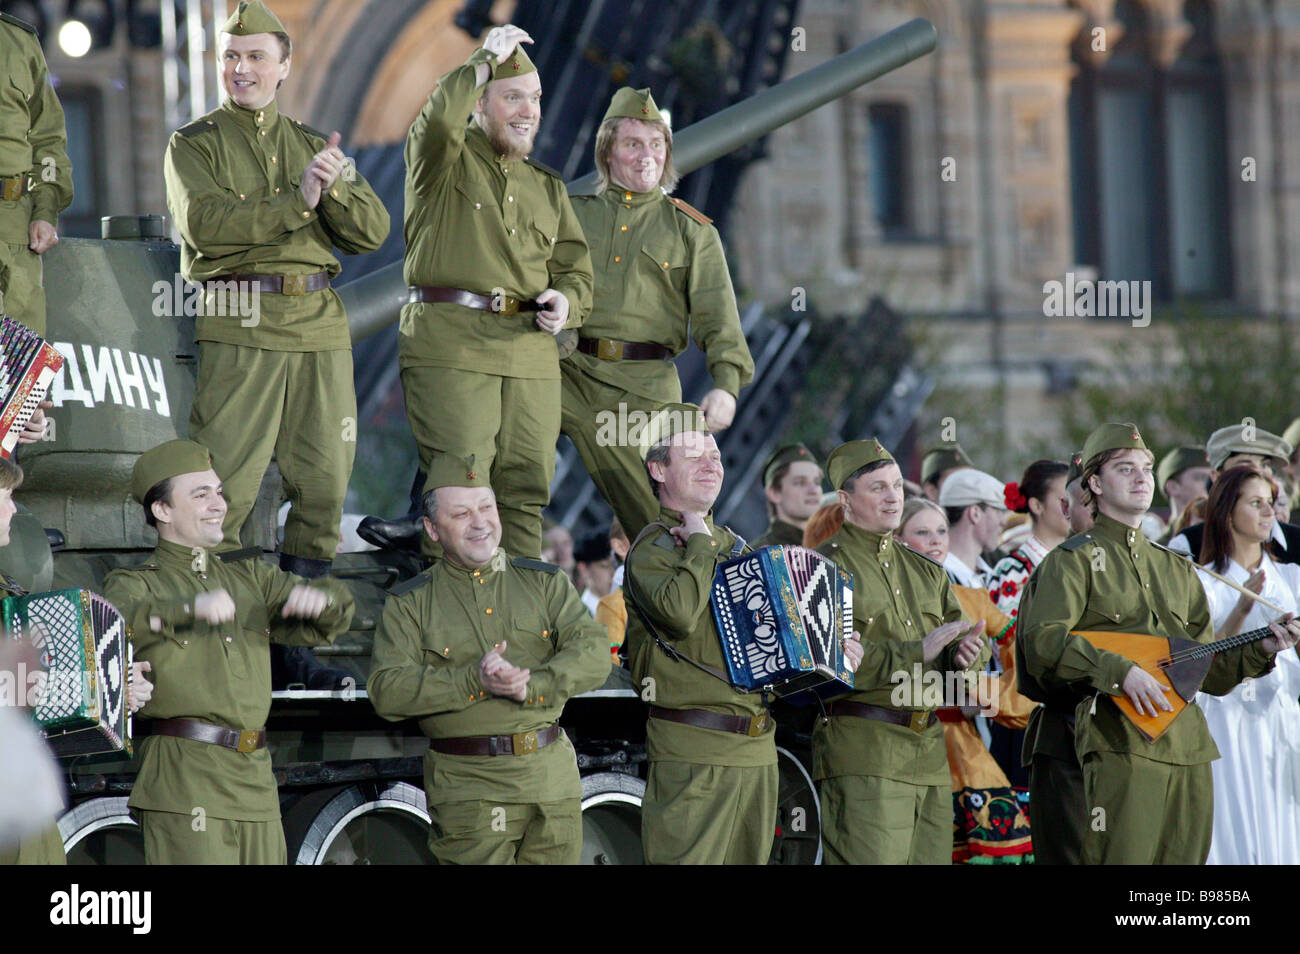 An army choir at the pageant Bow to the Glorious Years Red Square Moscow May 9 2005 - Stock Image